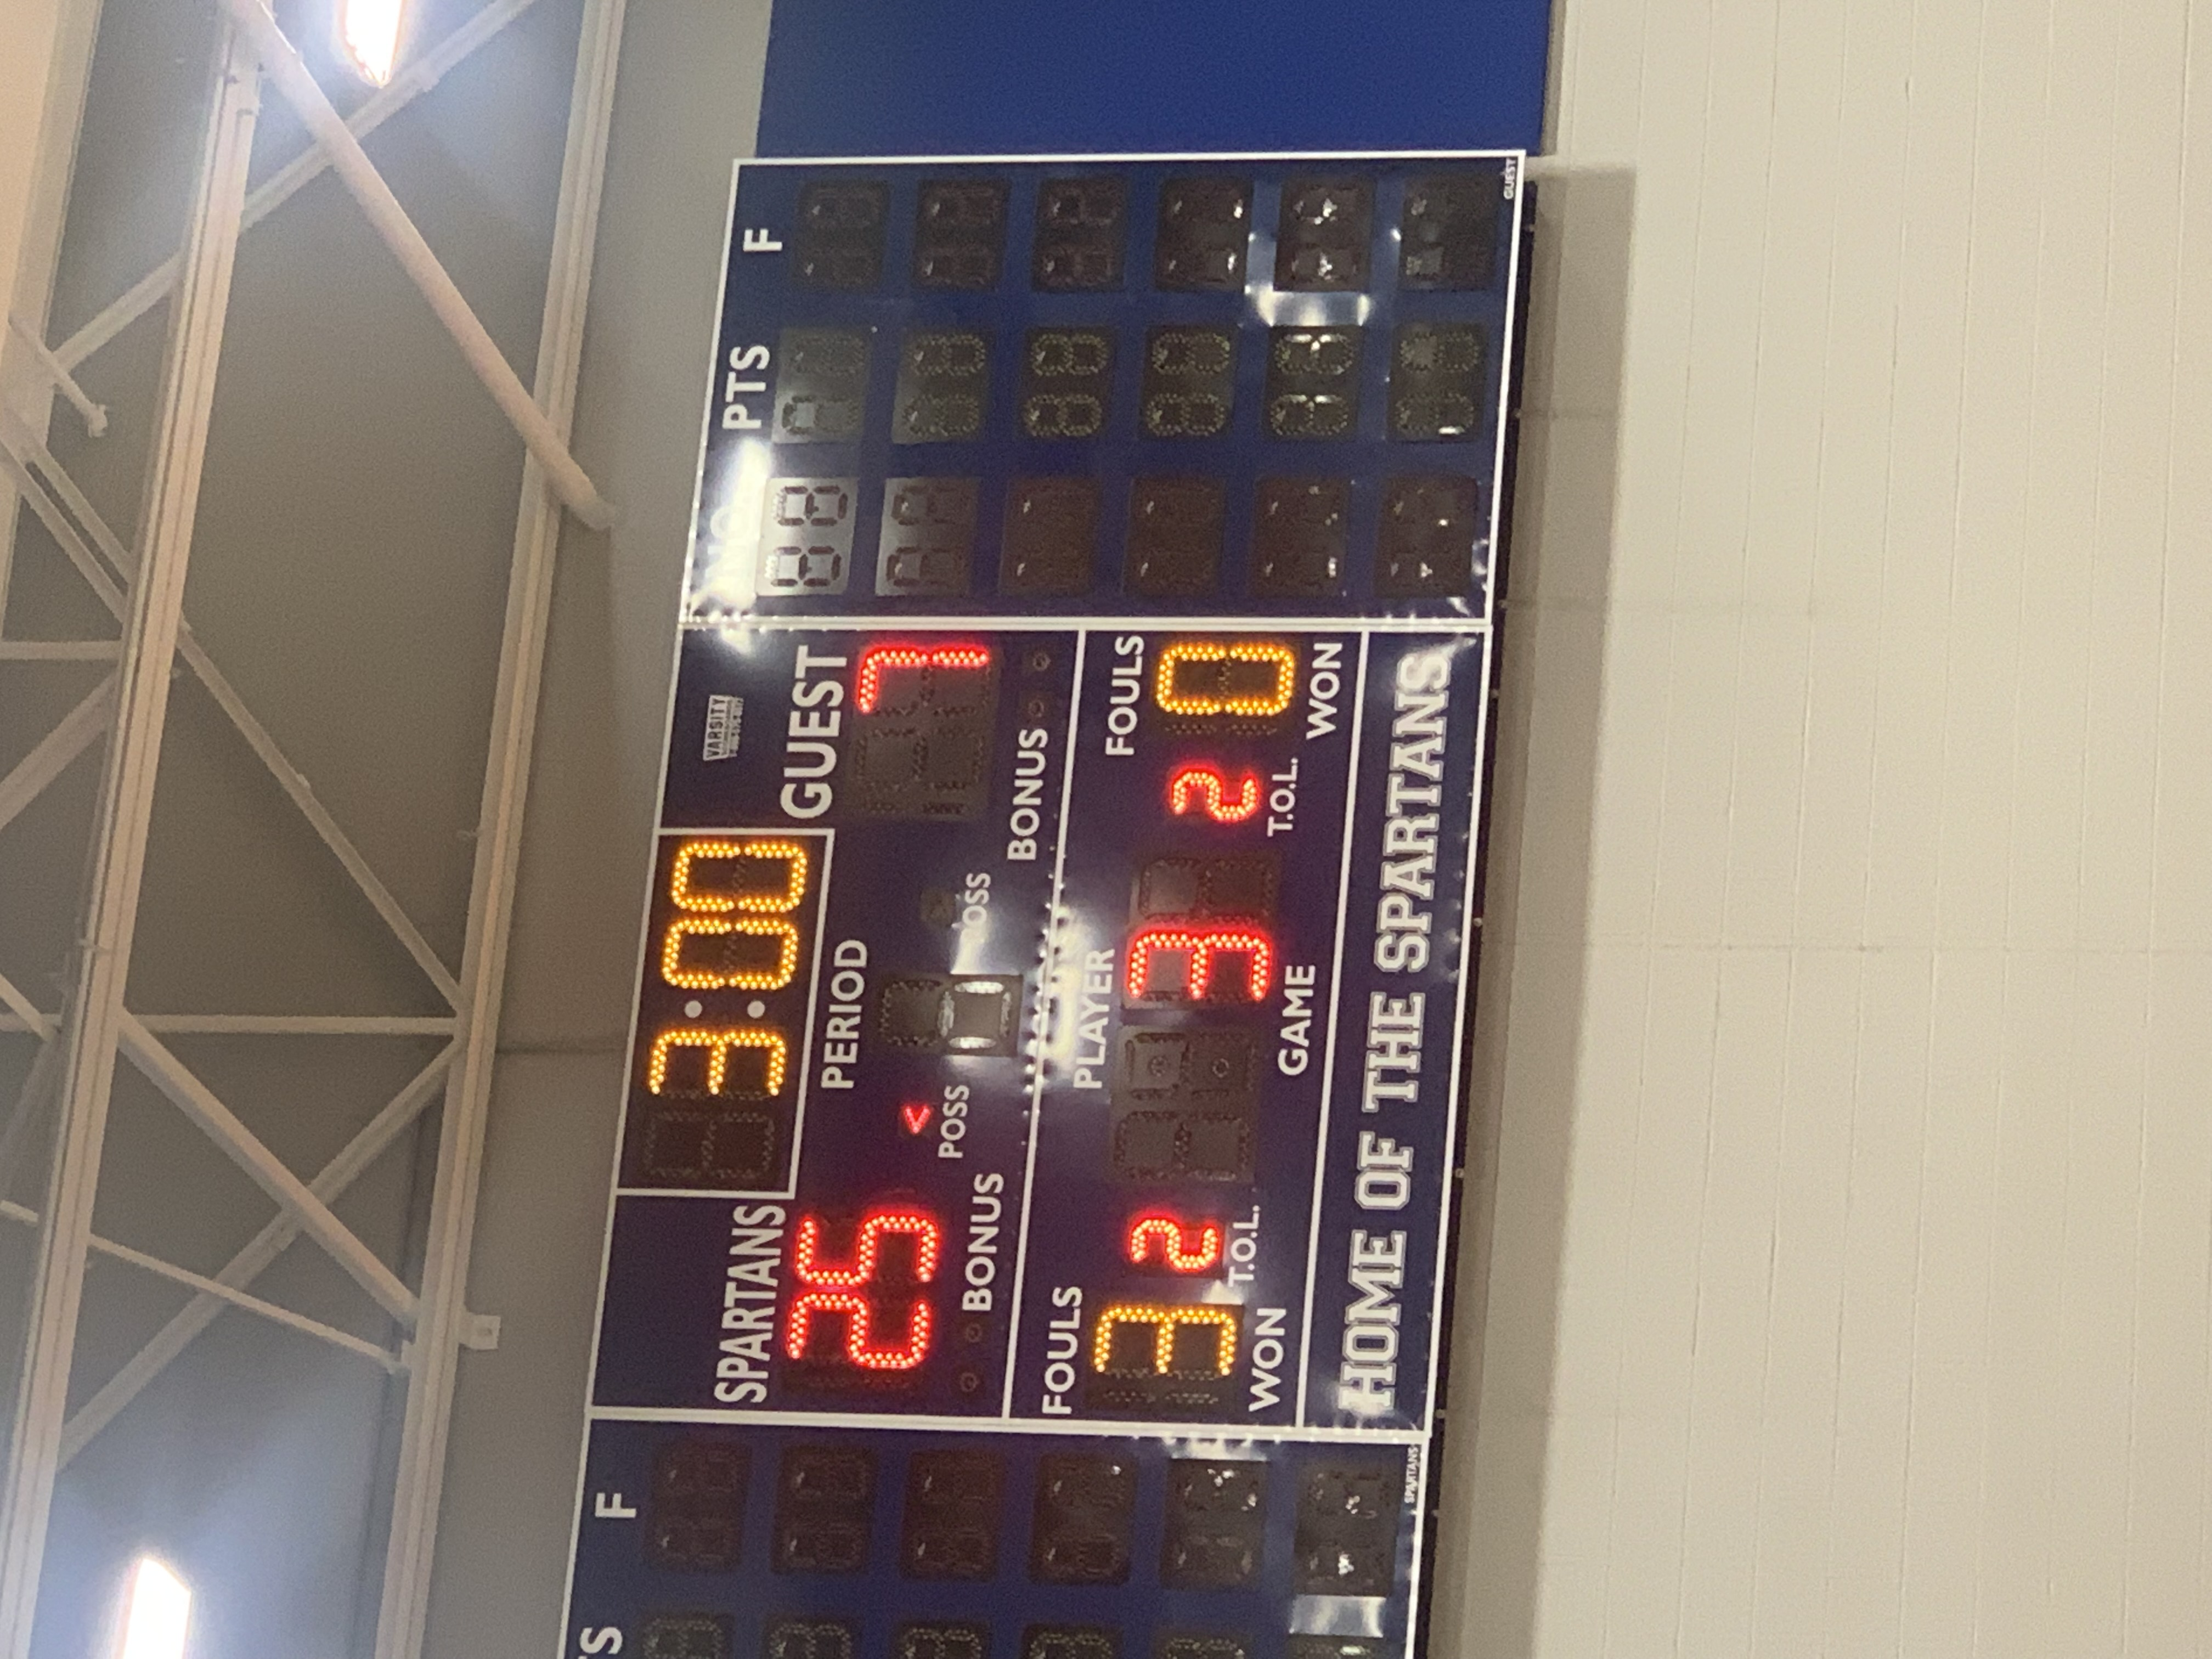 The scoreboard at the volleyball game showing we won on August 21, 2021